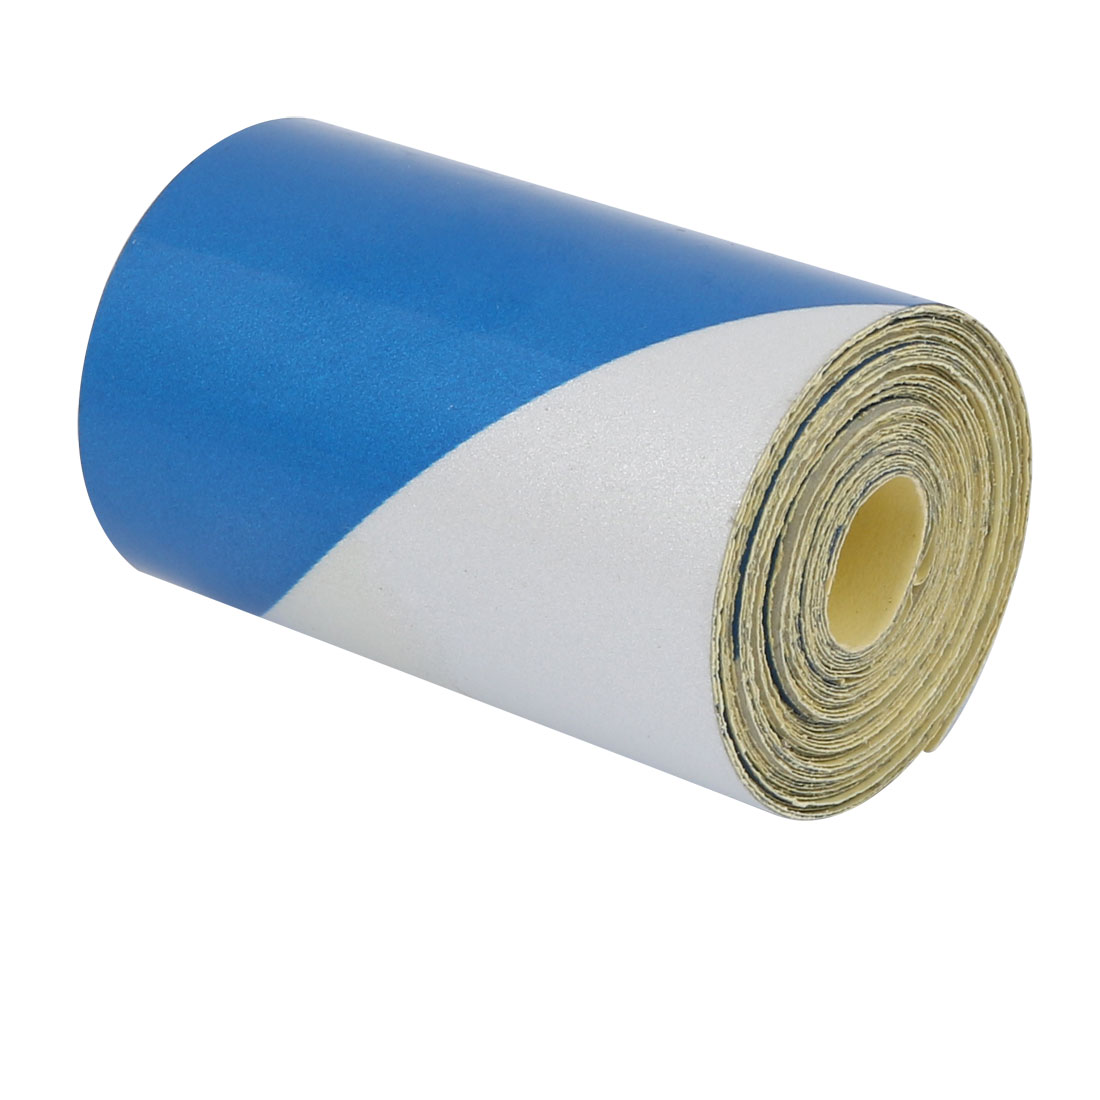 5cm Wide 3Meter Long Single Sided Adhesive Reflective Warning Tape Blue White